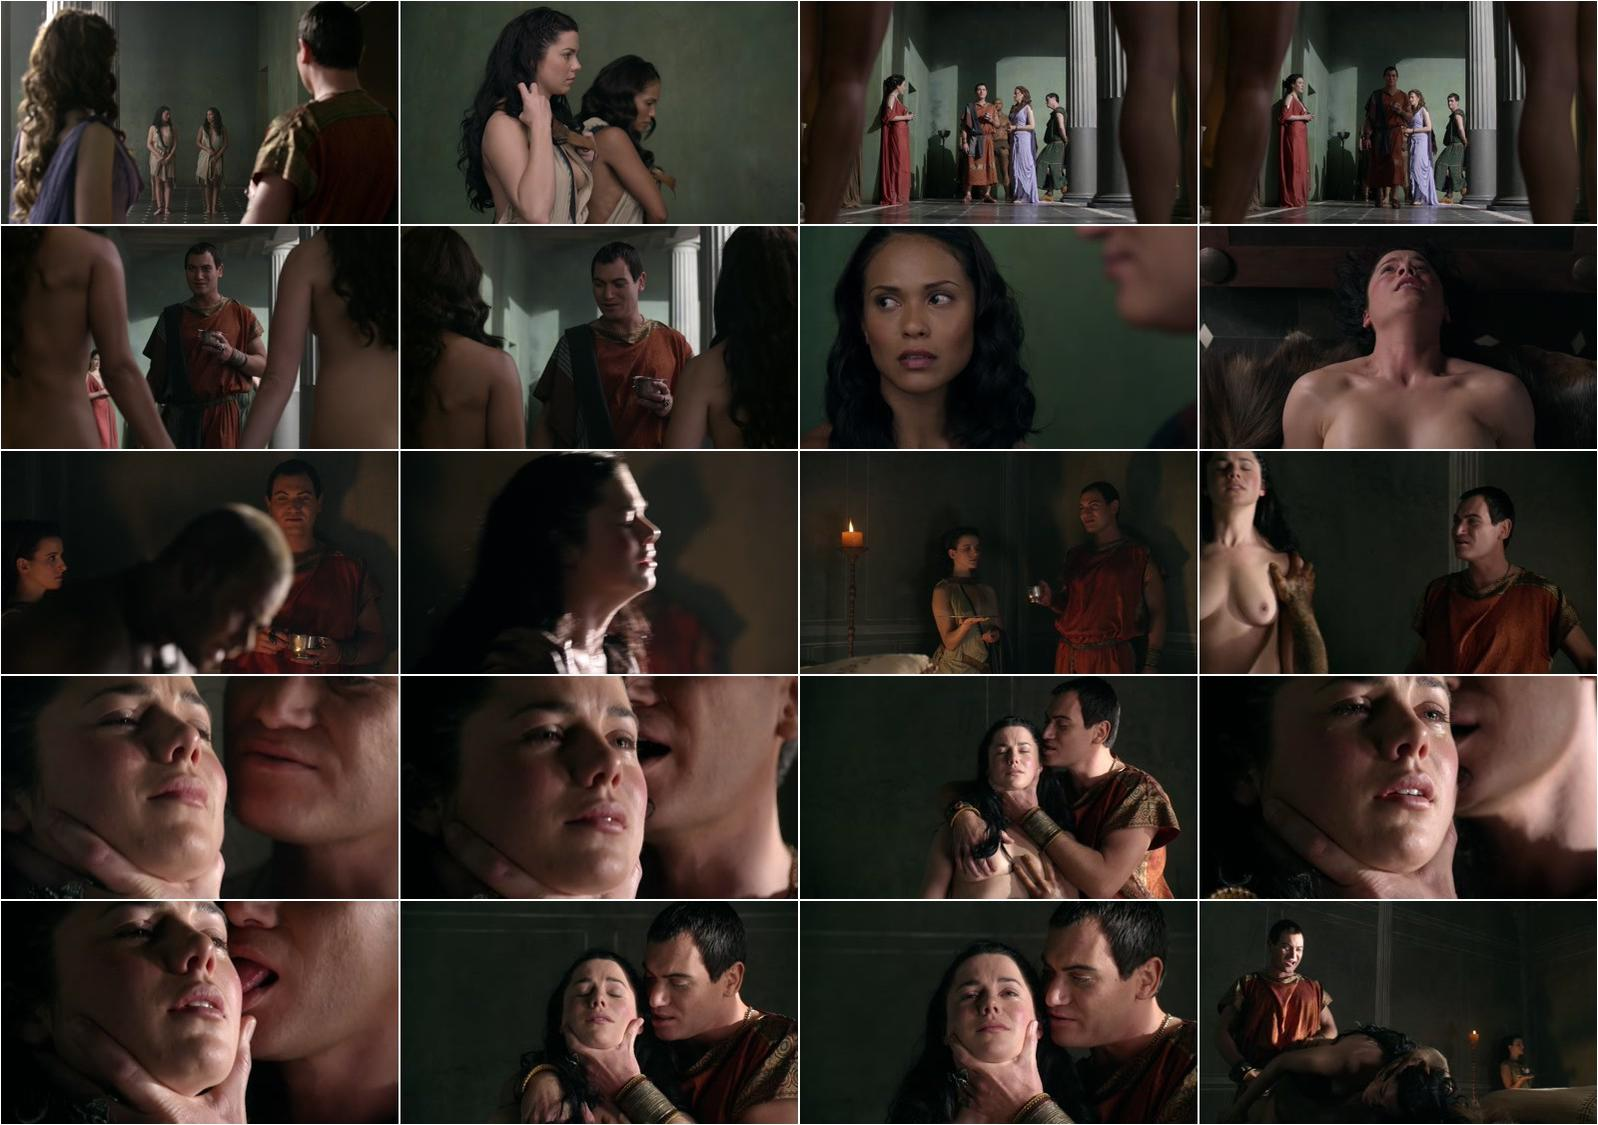 Jessica Grace Smith nude, Lesley-Ann underwearndt nude - Spartacus: Gods of the Arena s01e03 (2011)